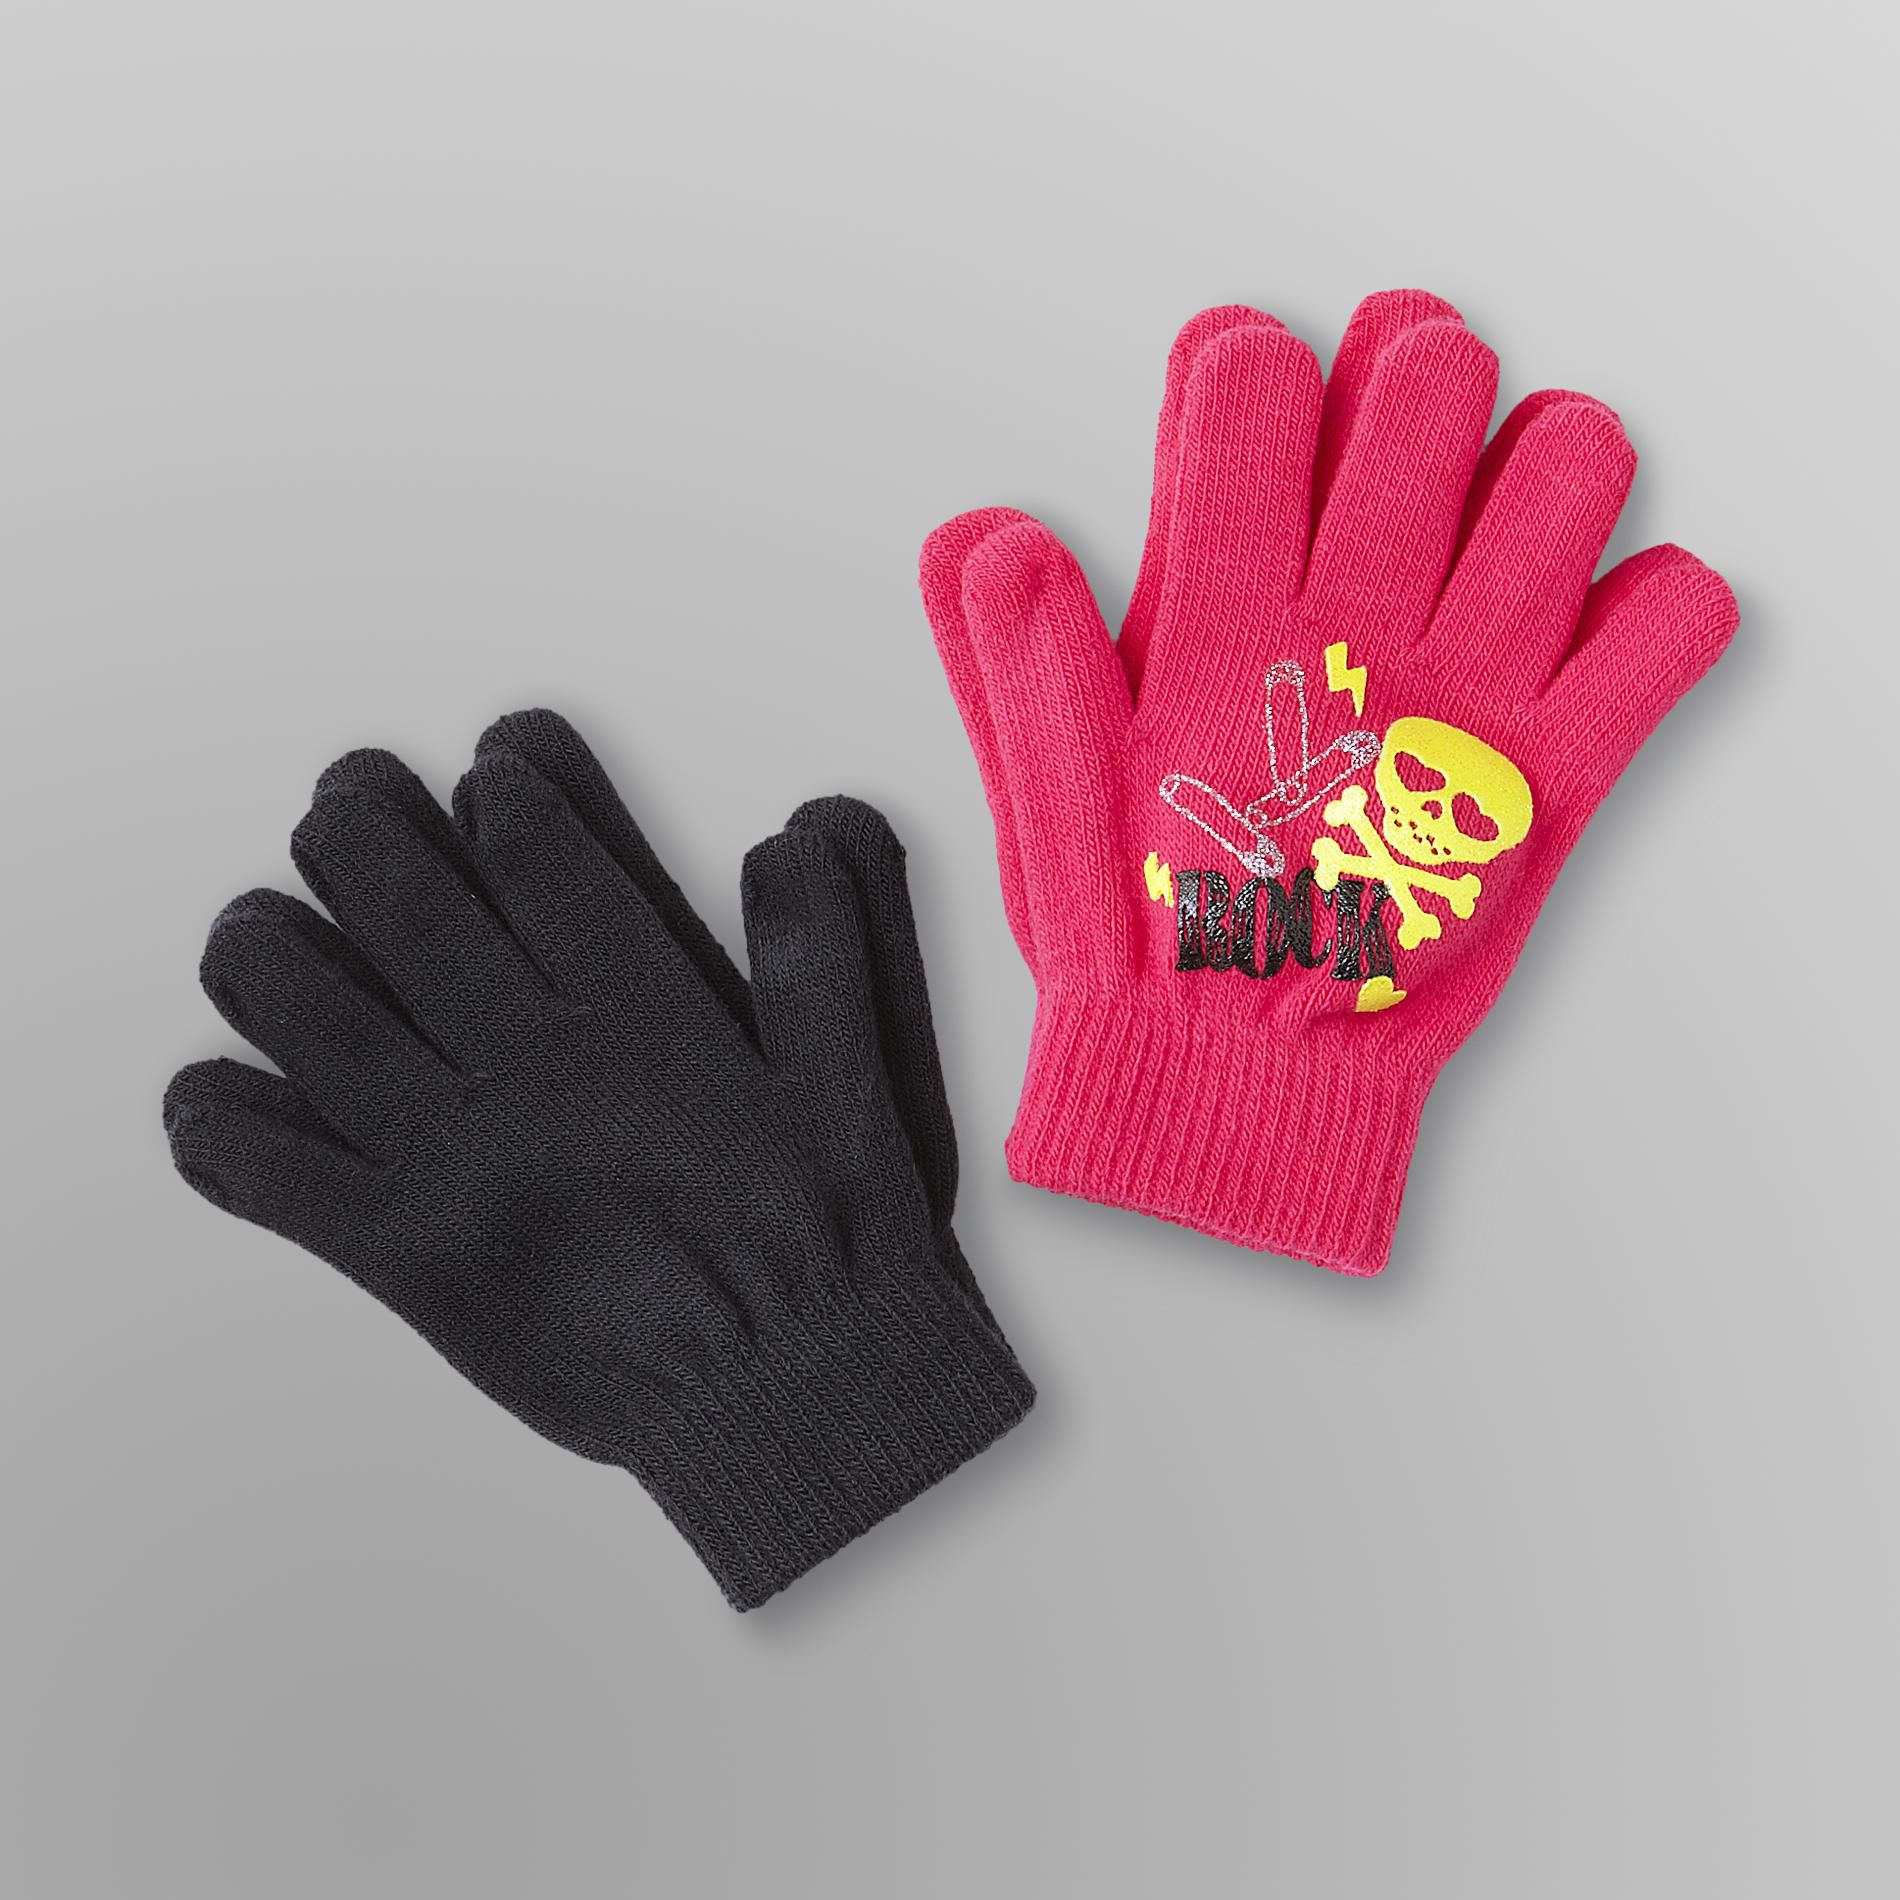 Joe Boxer  Girl's Stretch Gloves - Two